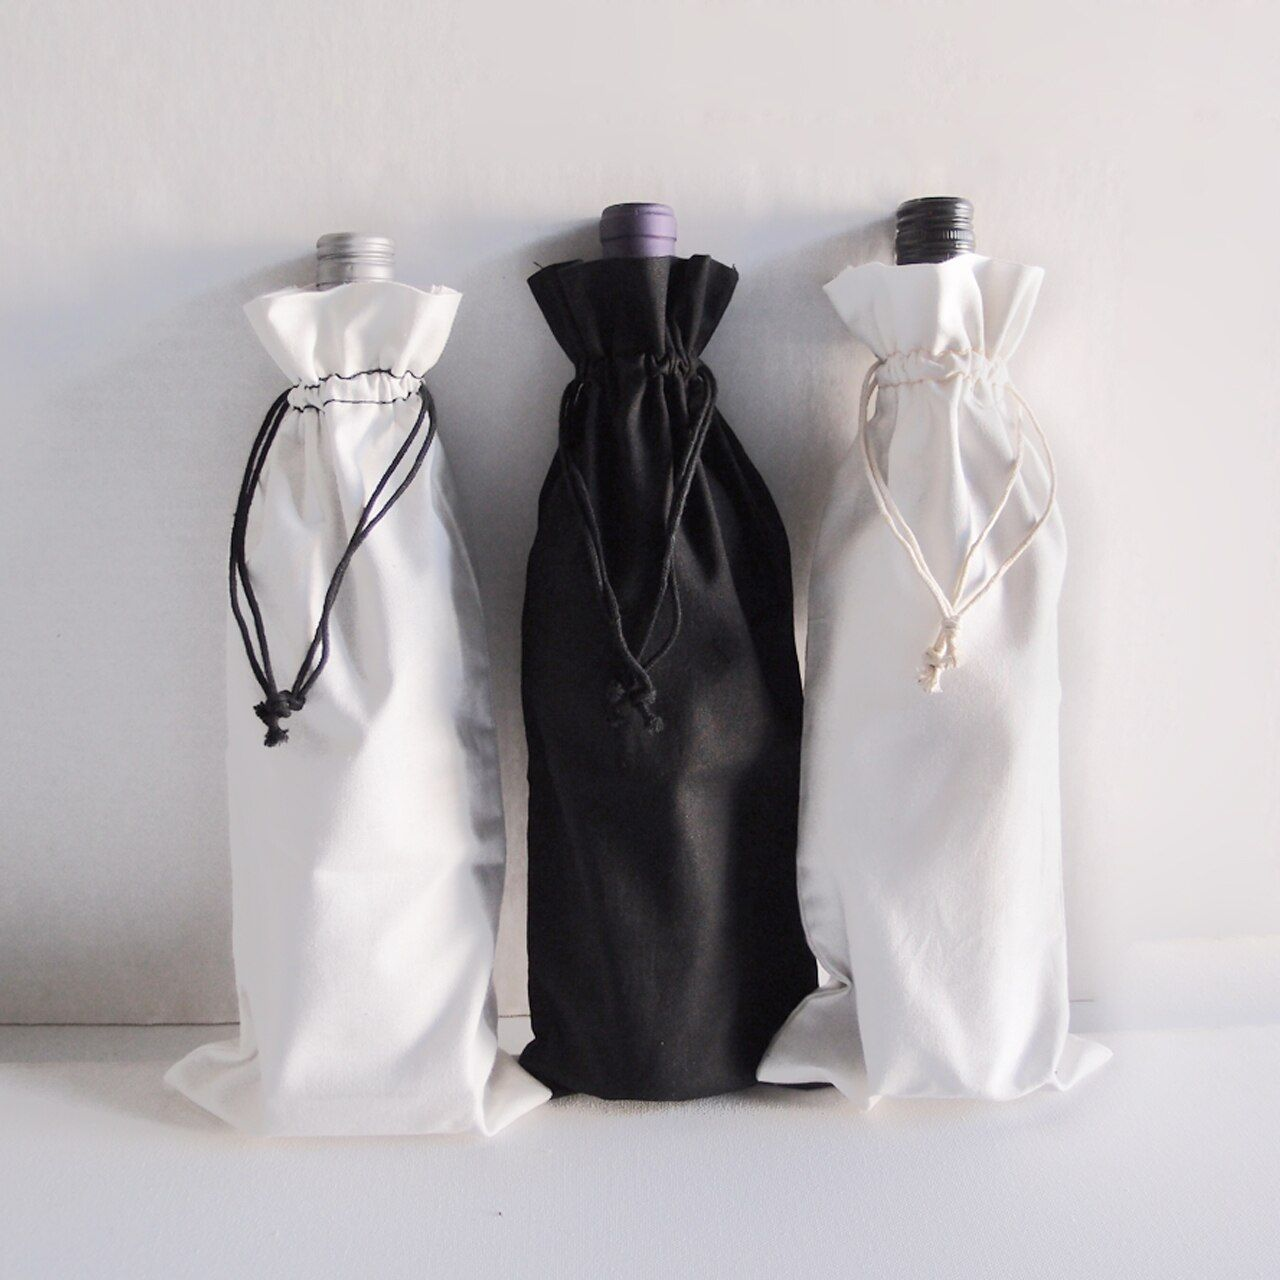 Cotton wine bags wholesale wine bags gift packaging